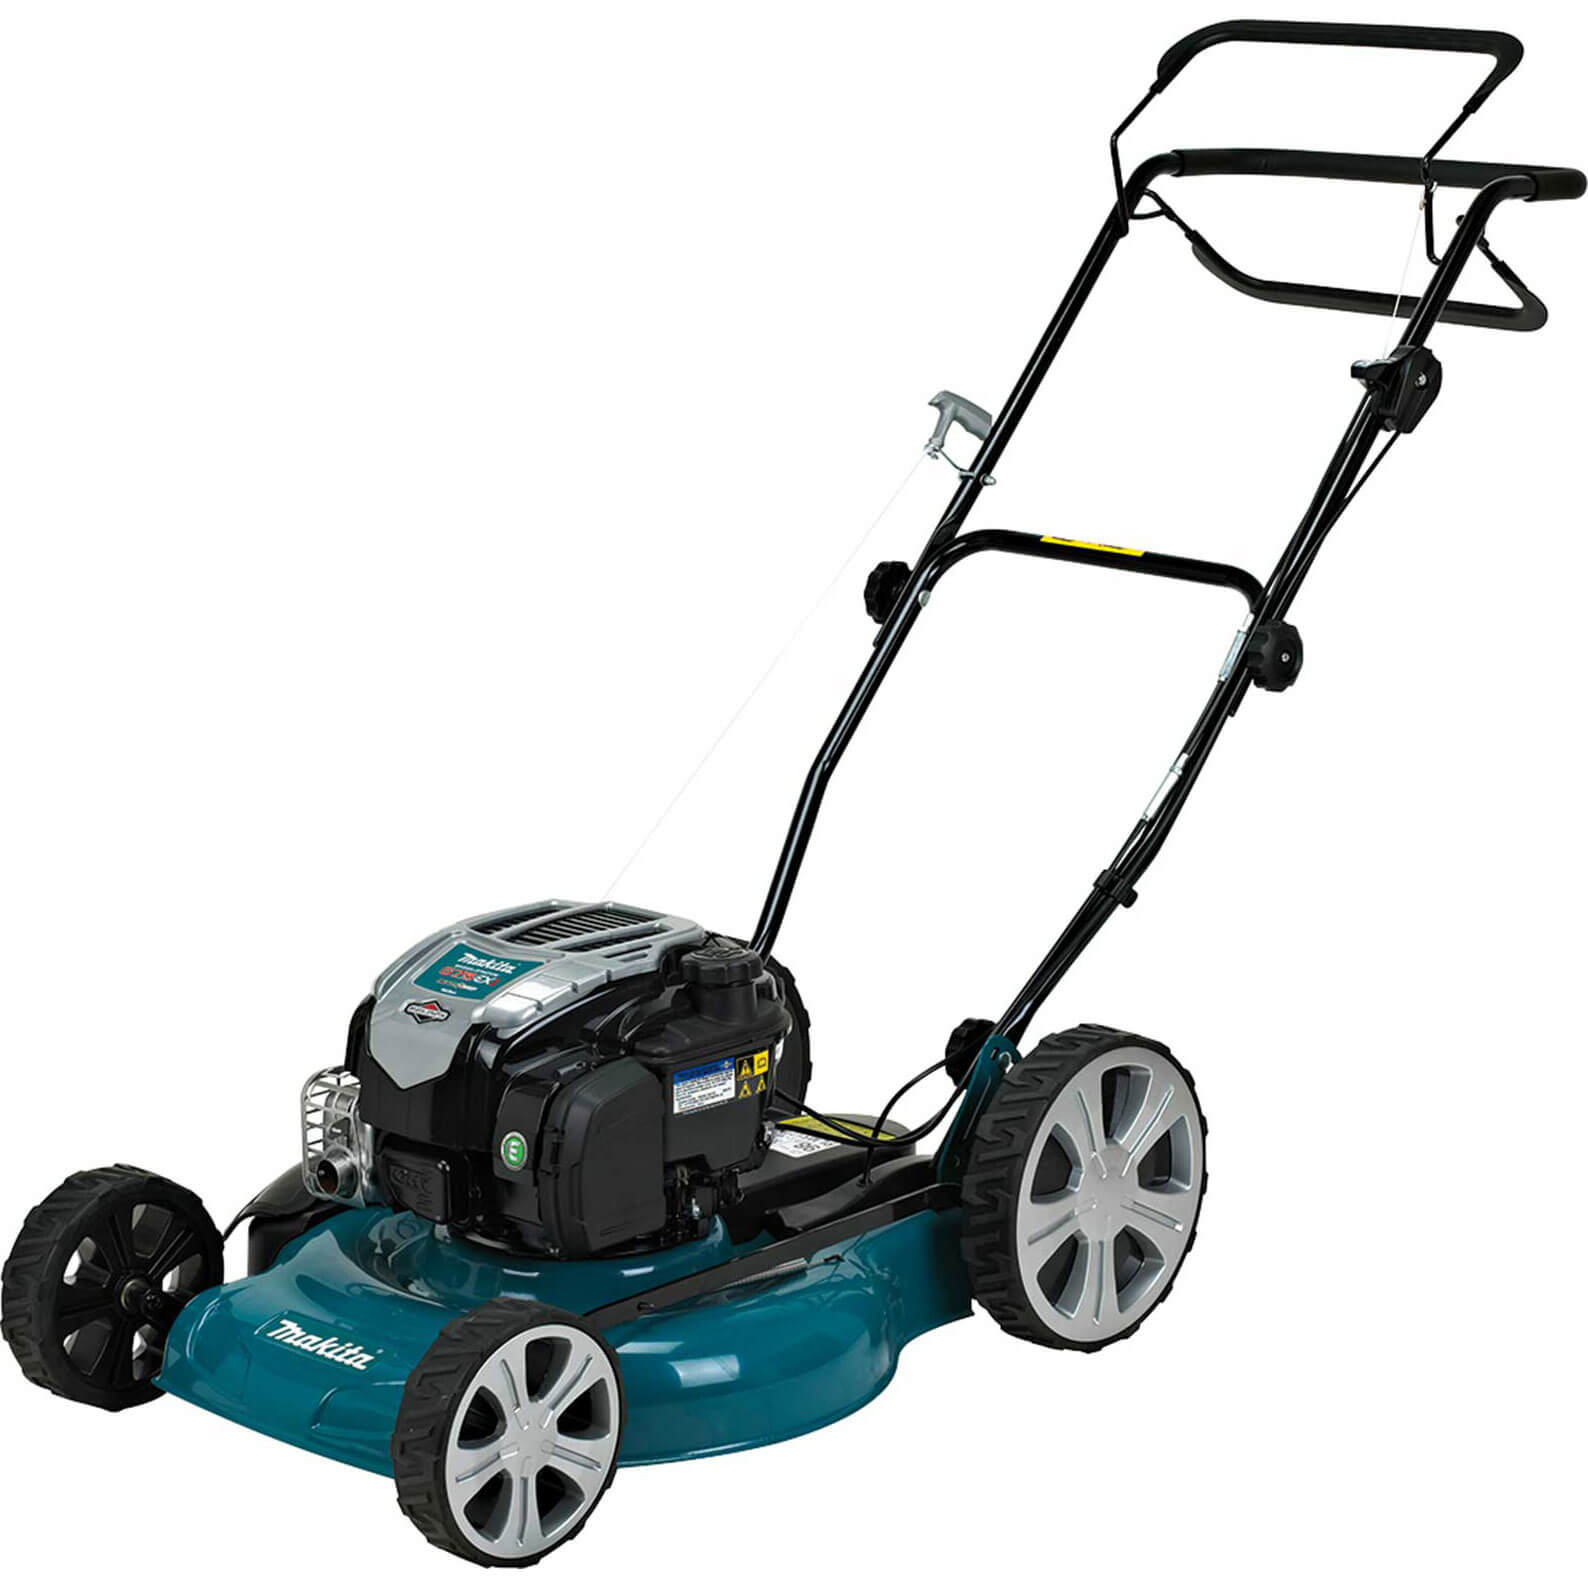 Image of Makita PLM5121N2 Mulching Petrol Rotary Lawnmower 560mm